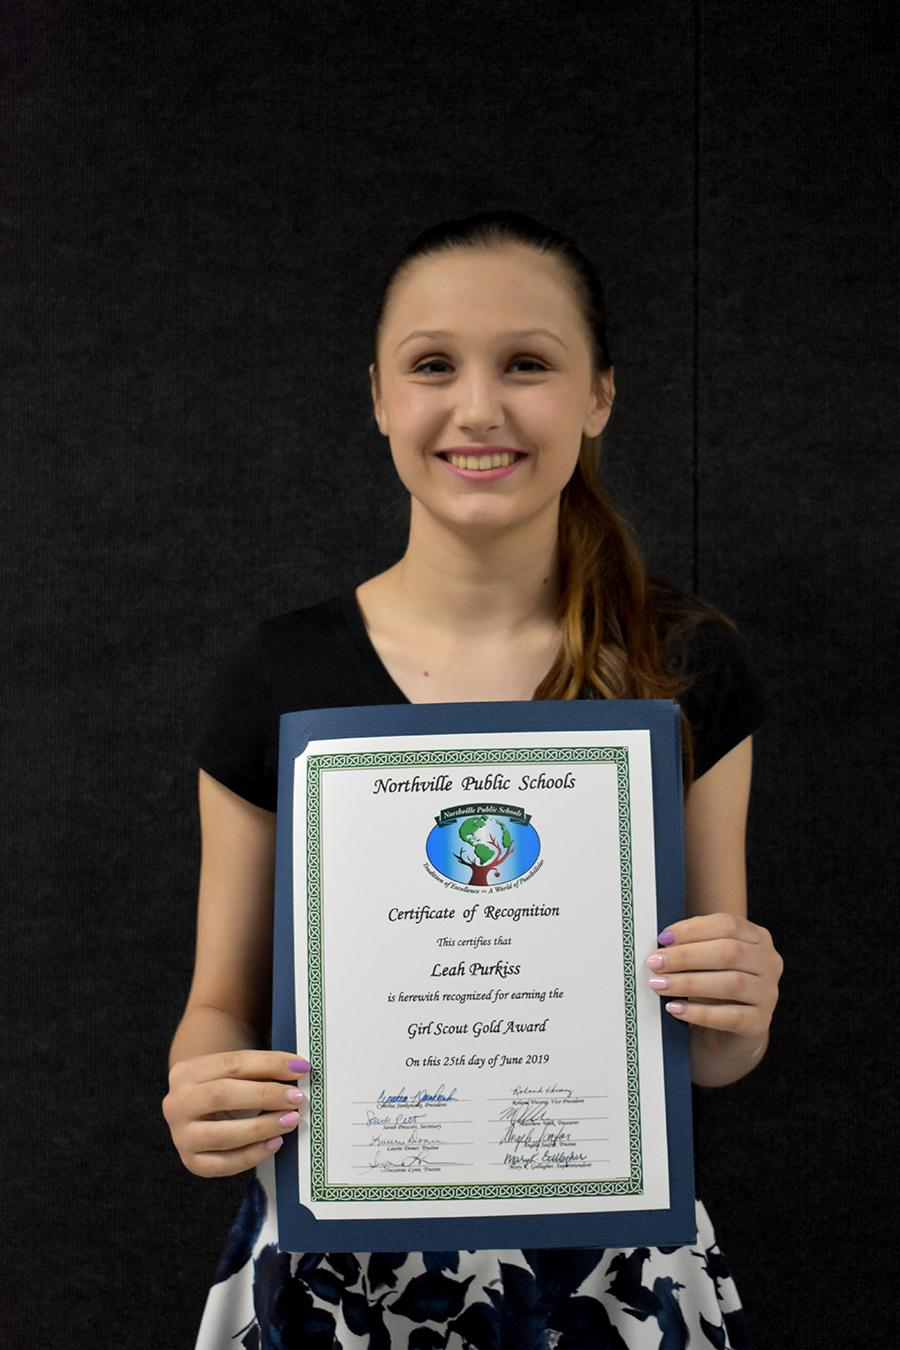 Leah Purkiss, Girls Scouts Gold Award